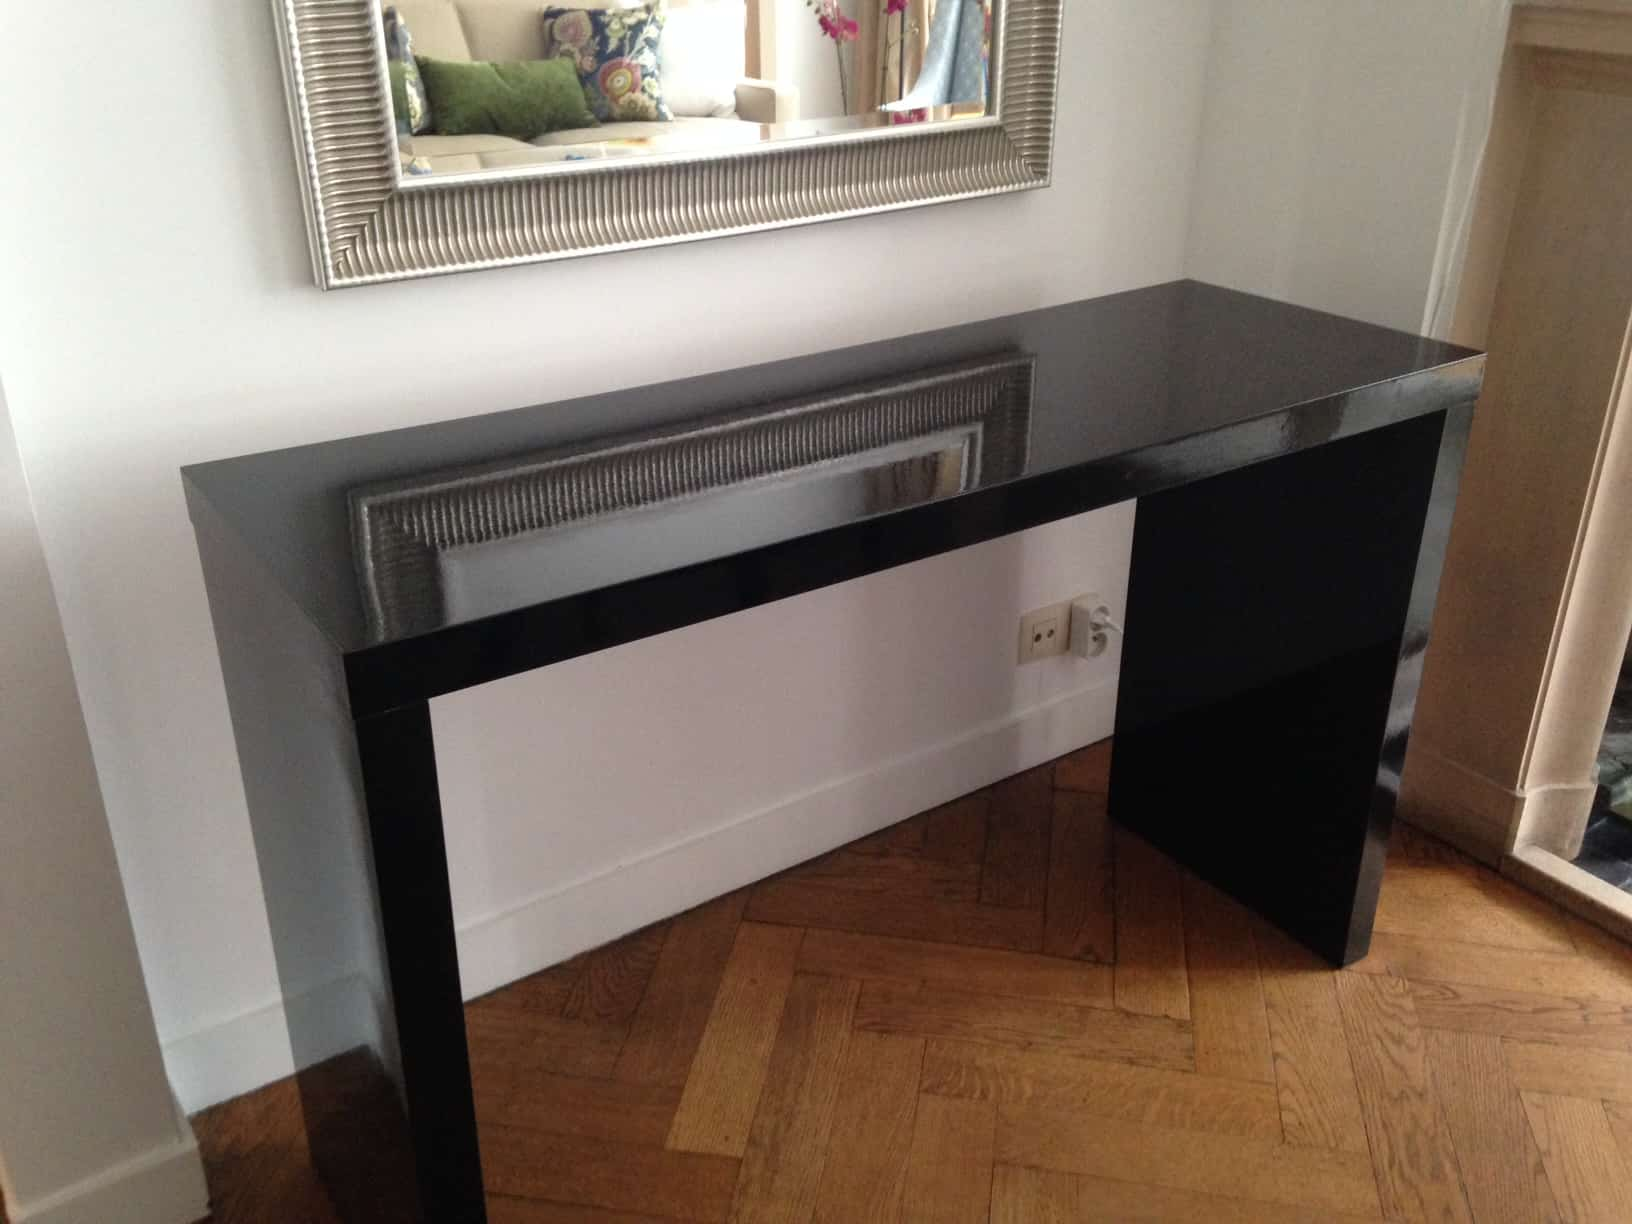 Console Maquillage Ikea Perfect Ikea Coiffeuse Malm With Ikea Coiffeuse Malm